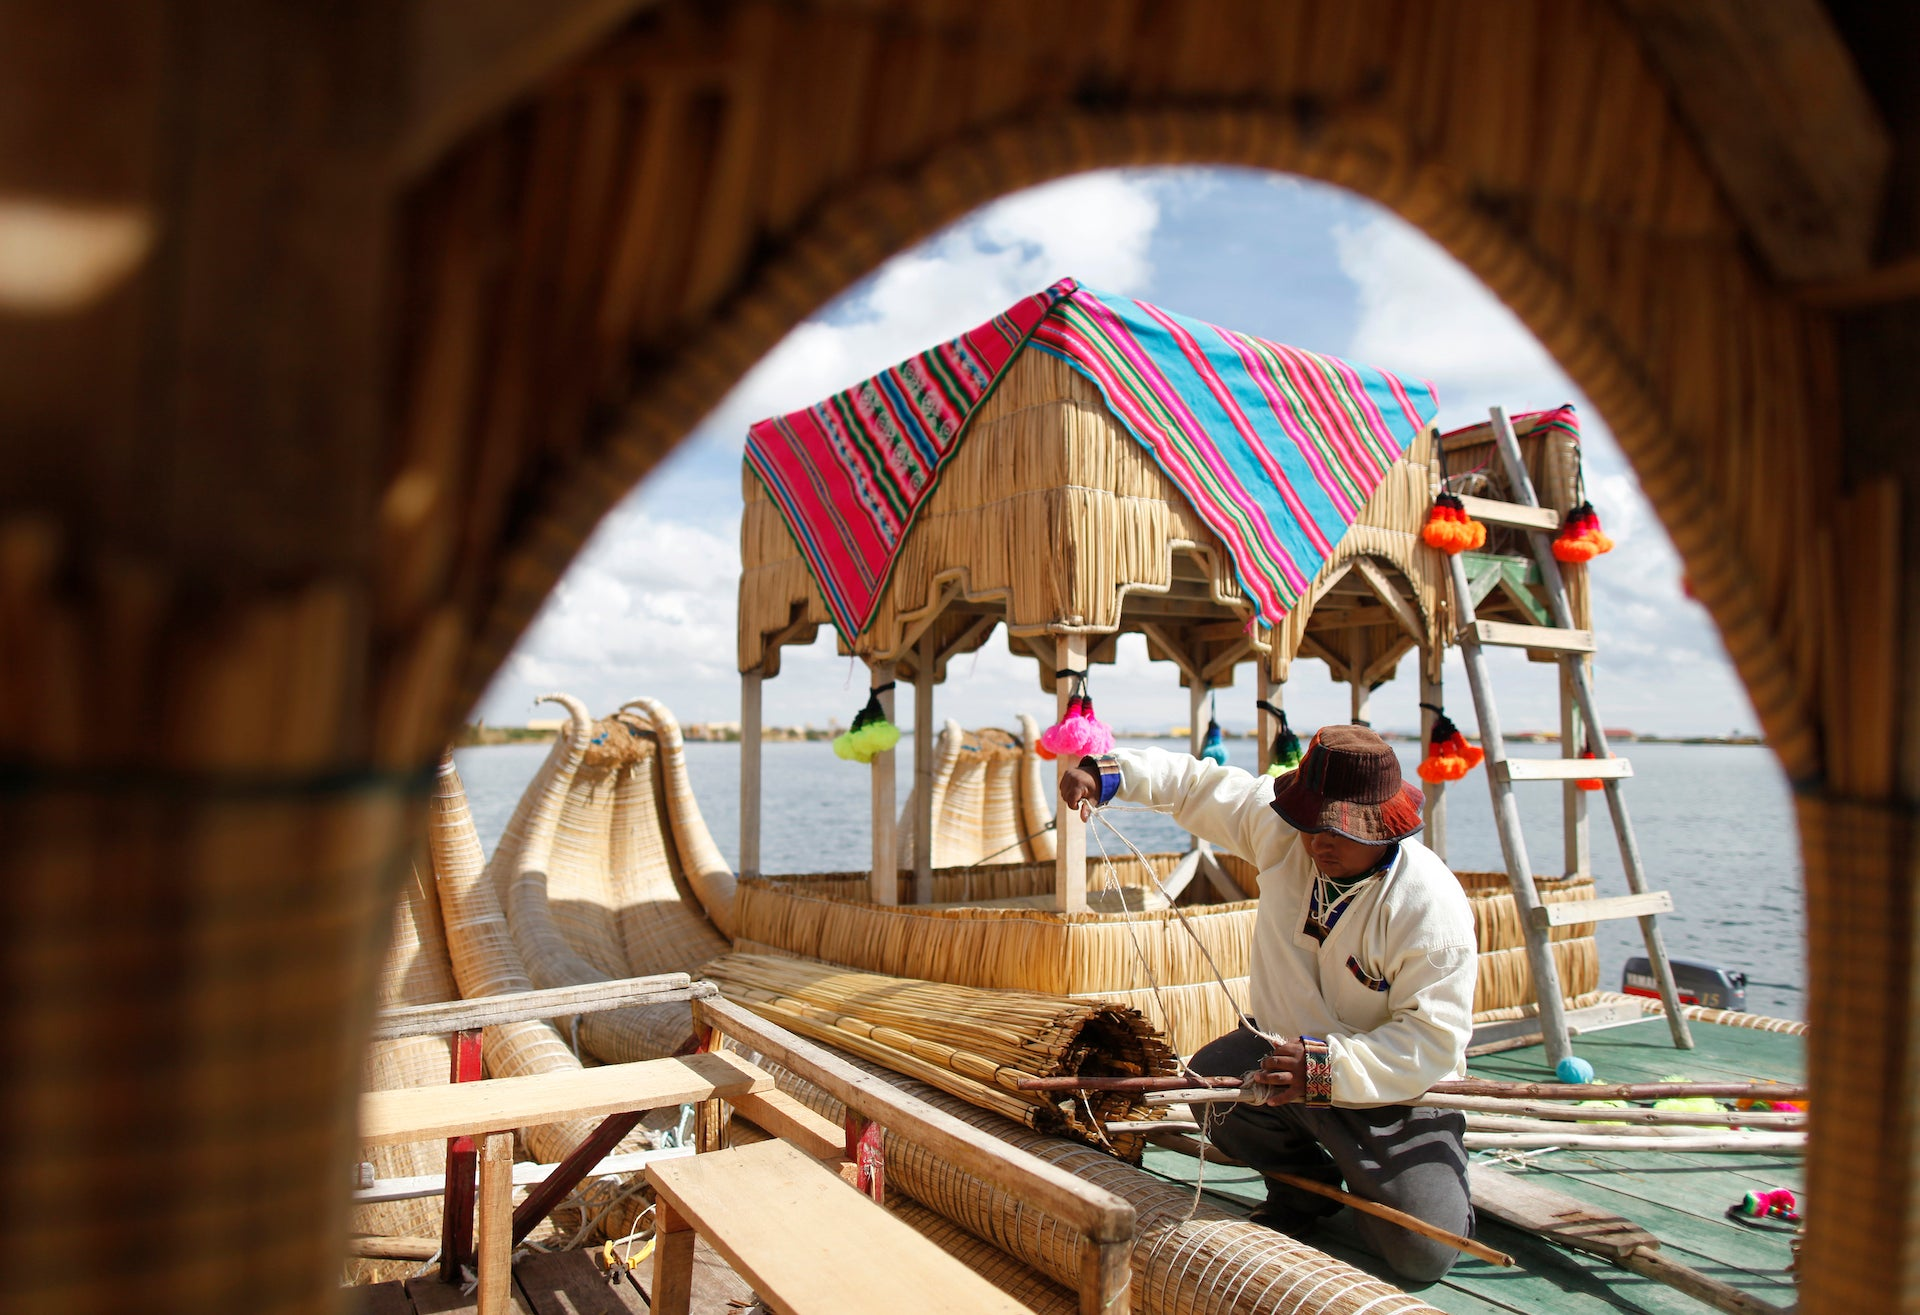 Las Islas Flotantes is a floating island system on Lake Titicaca in Peru inhabited by the Uros, who build their entire civilization from the locally grown totora reed. Photo © Enrique Castro-Mendivil; from the book Lo-TEK, courtesy of Julia Watson